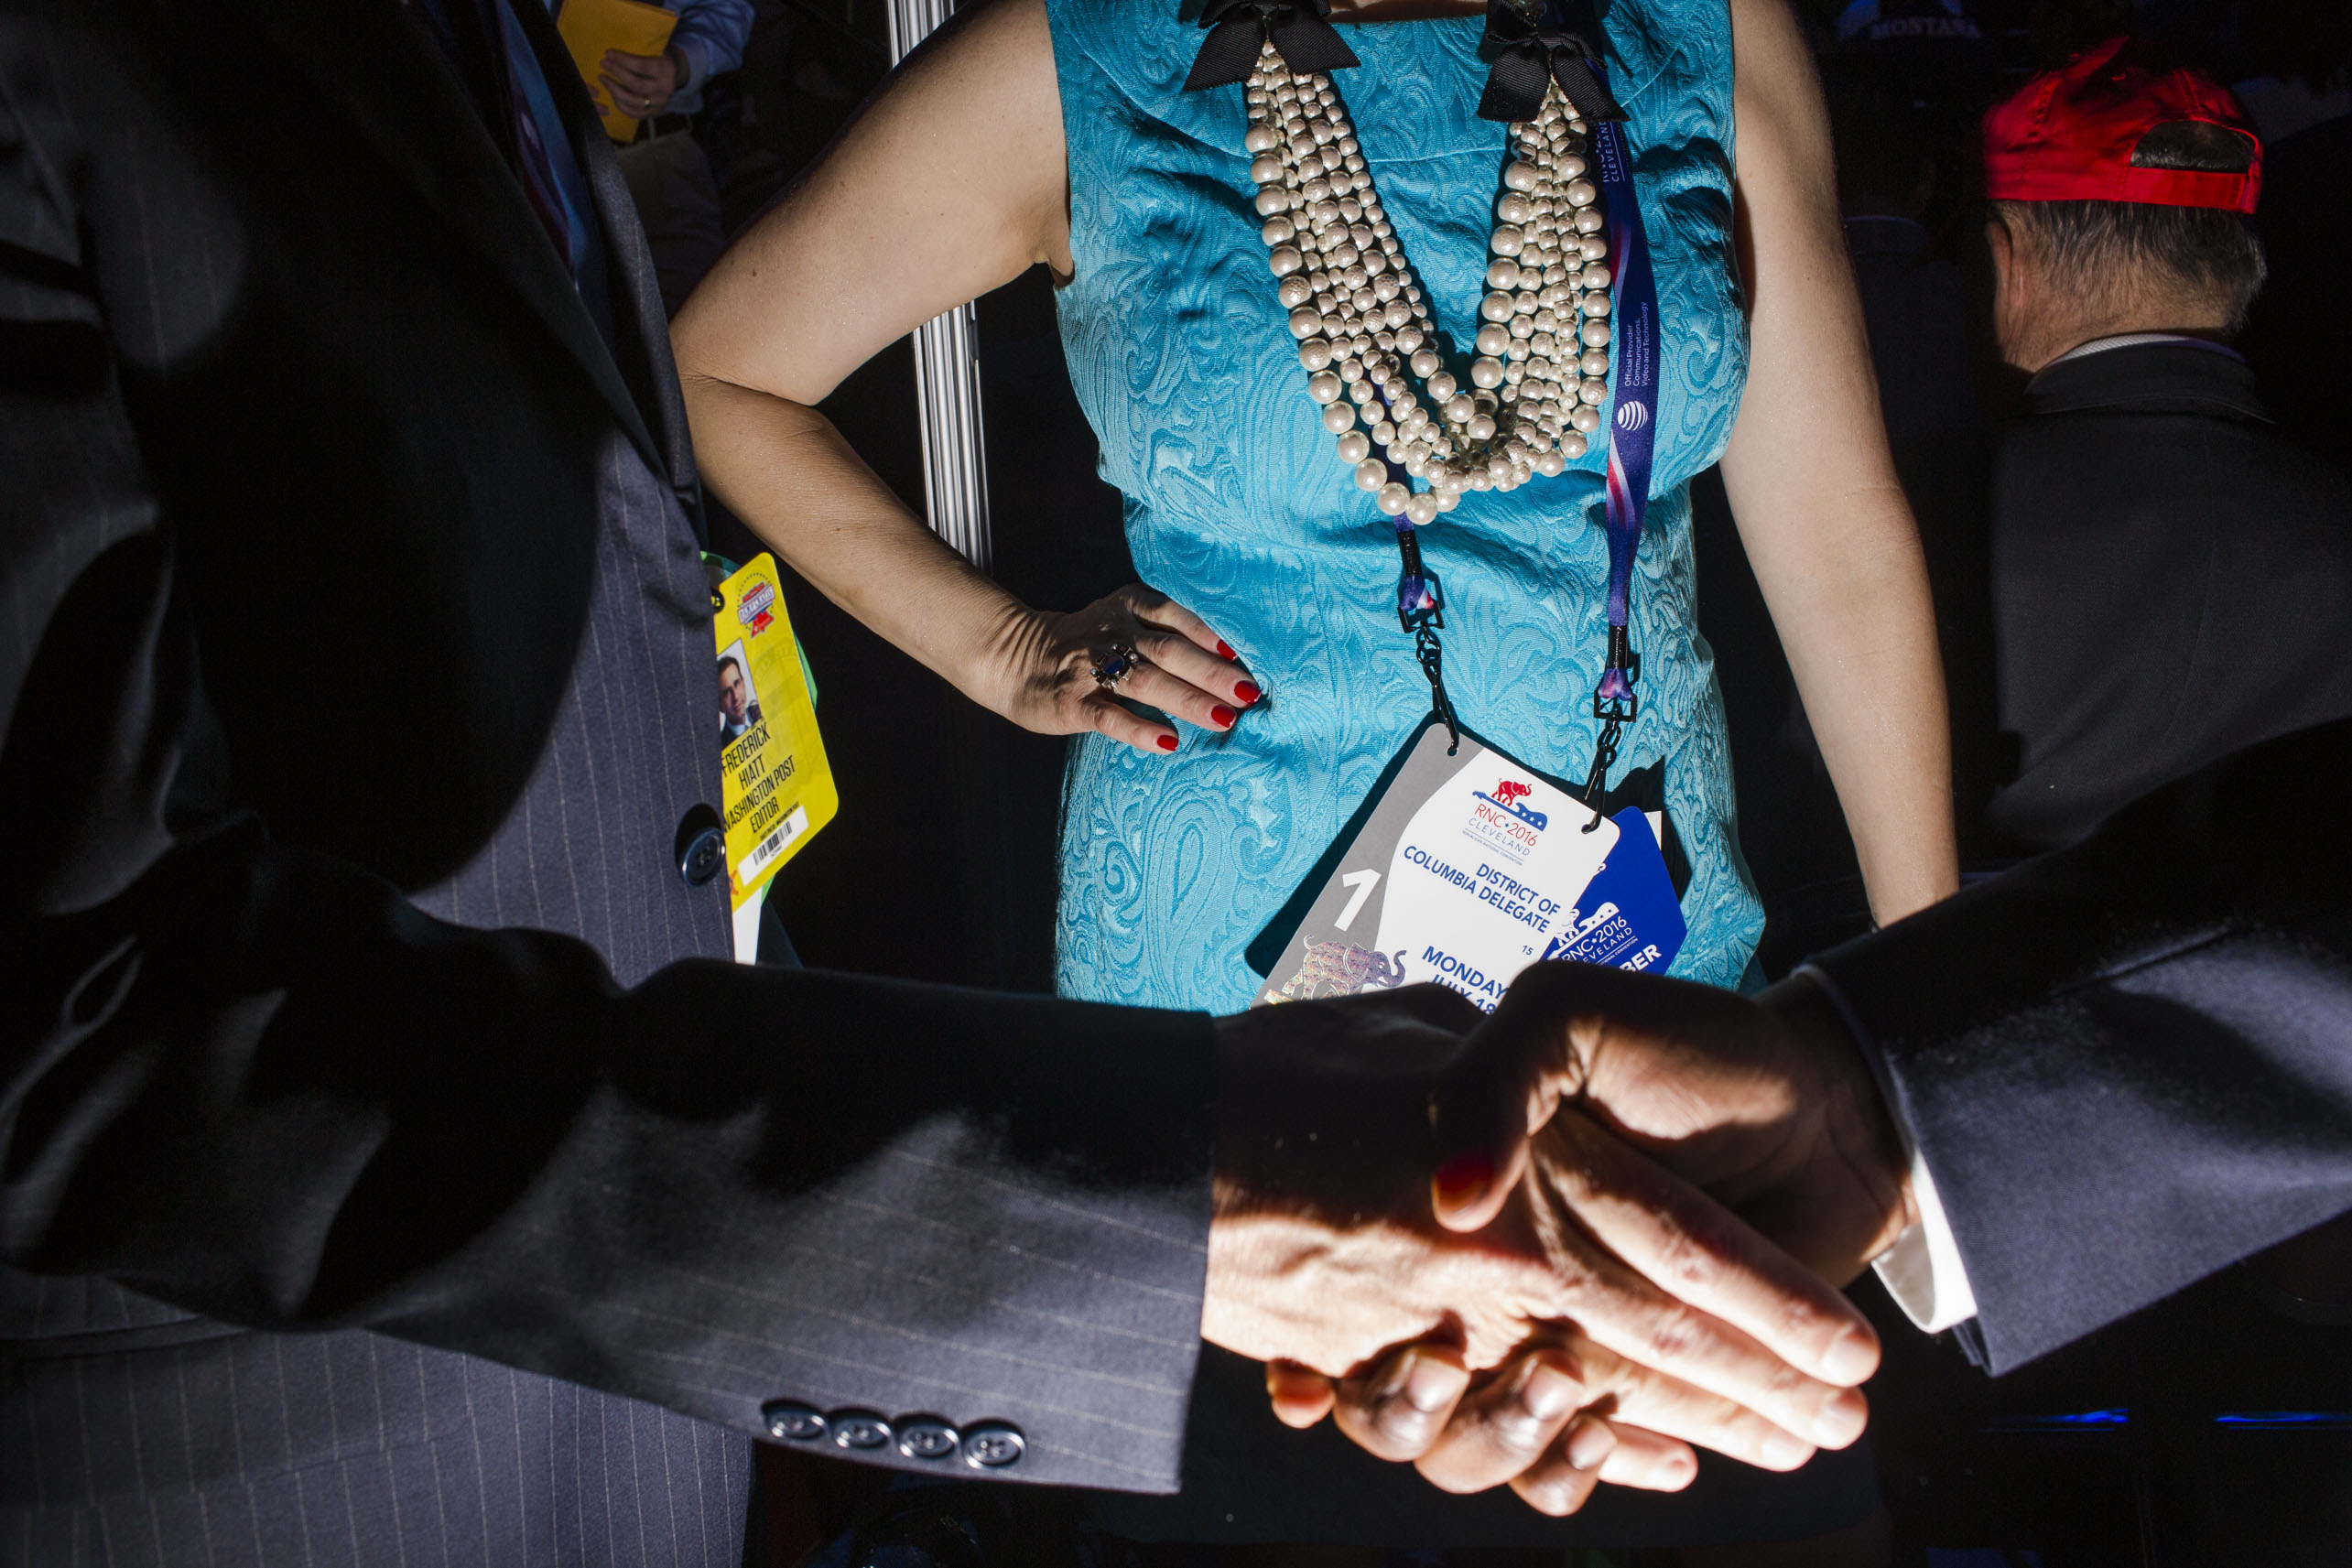 Women accessorize while some men wear classic pinstripes on the floor of the 2016 Republican National Convention on Monday, July 18, 2016, in Cleveland.